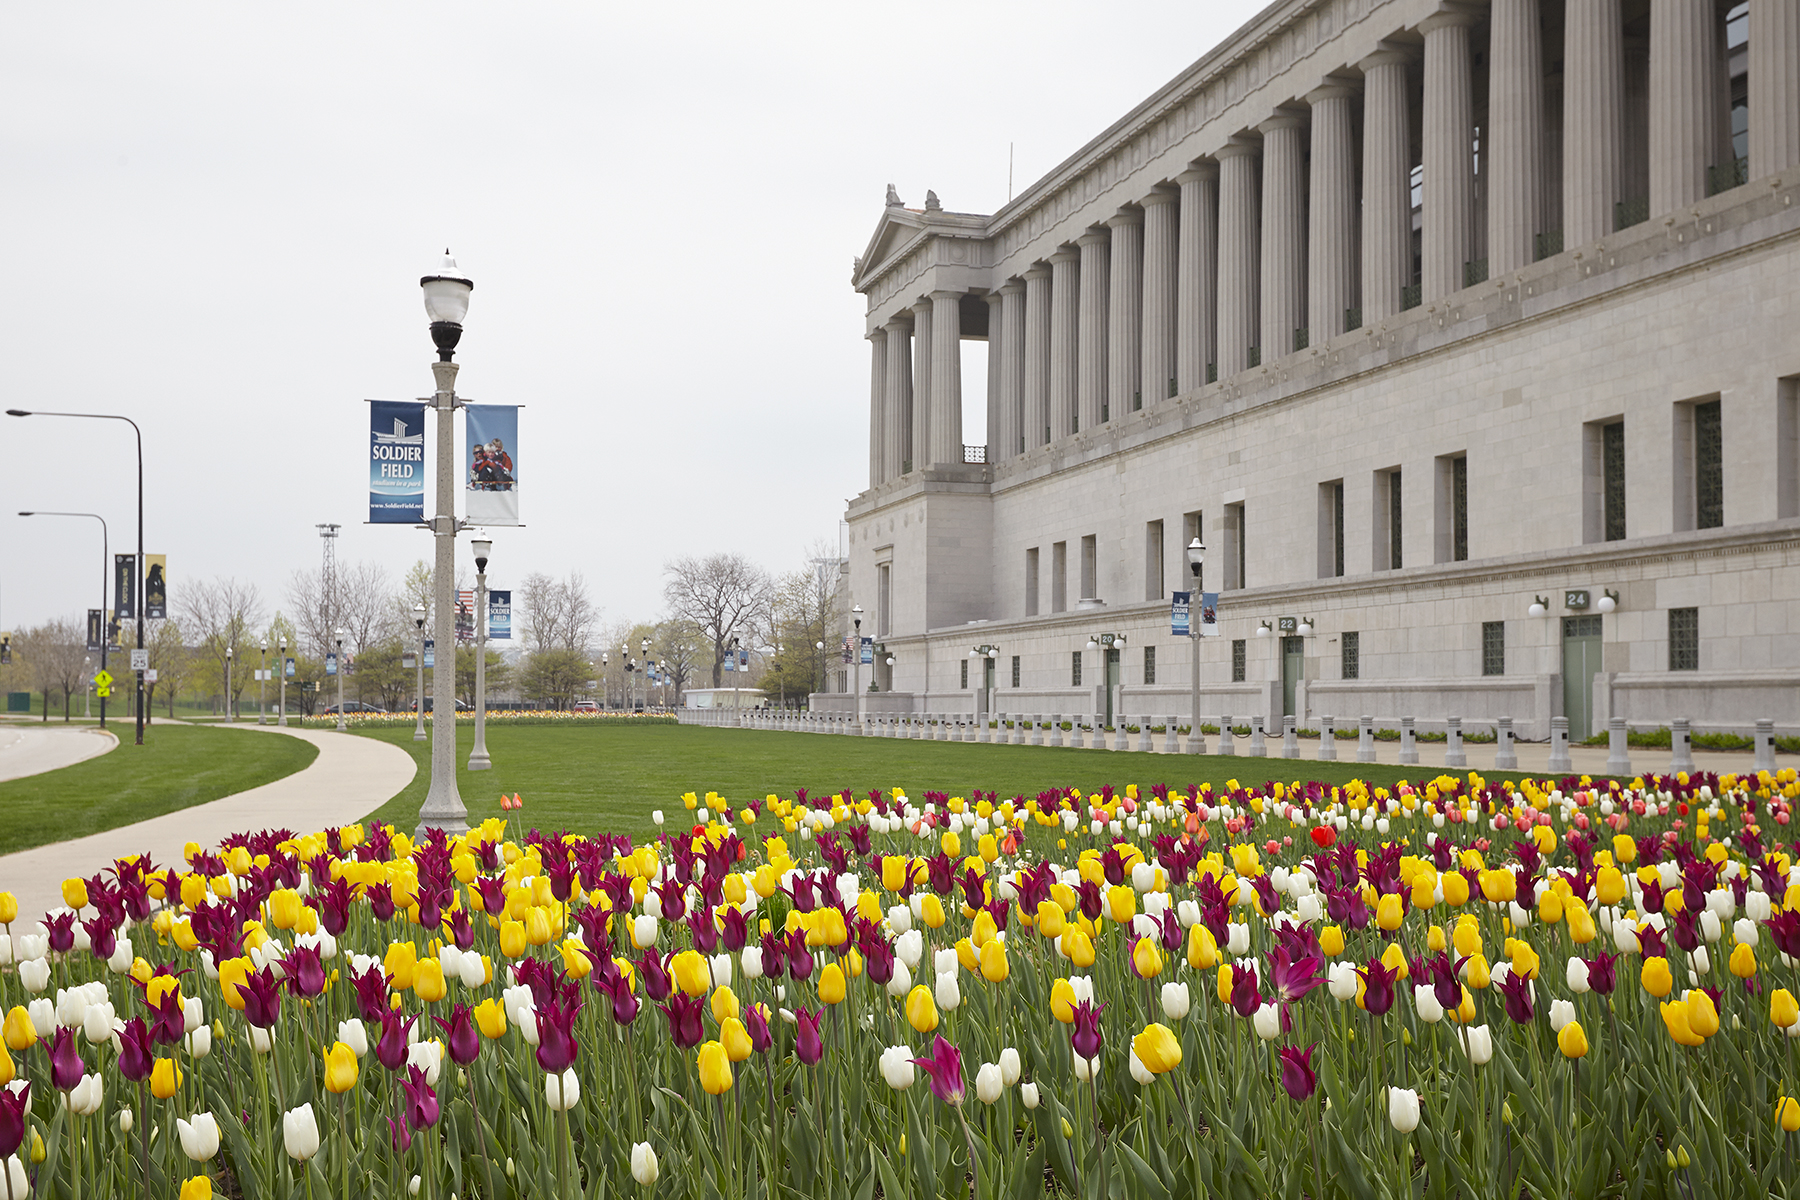 013_Christy_Webber_Soldier_Field_Tulips_MG_7838.jpg